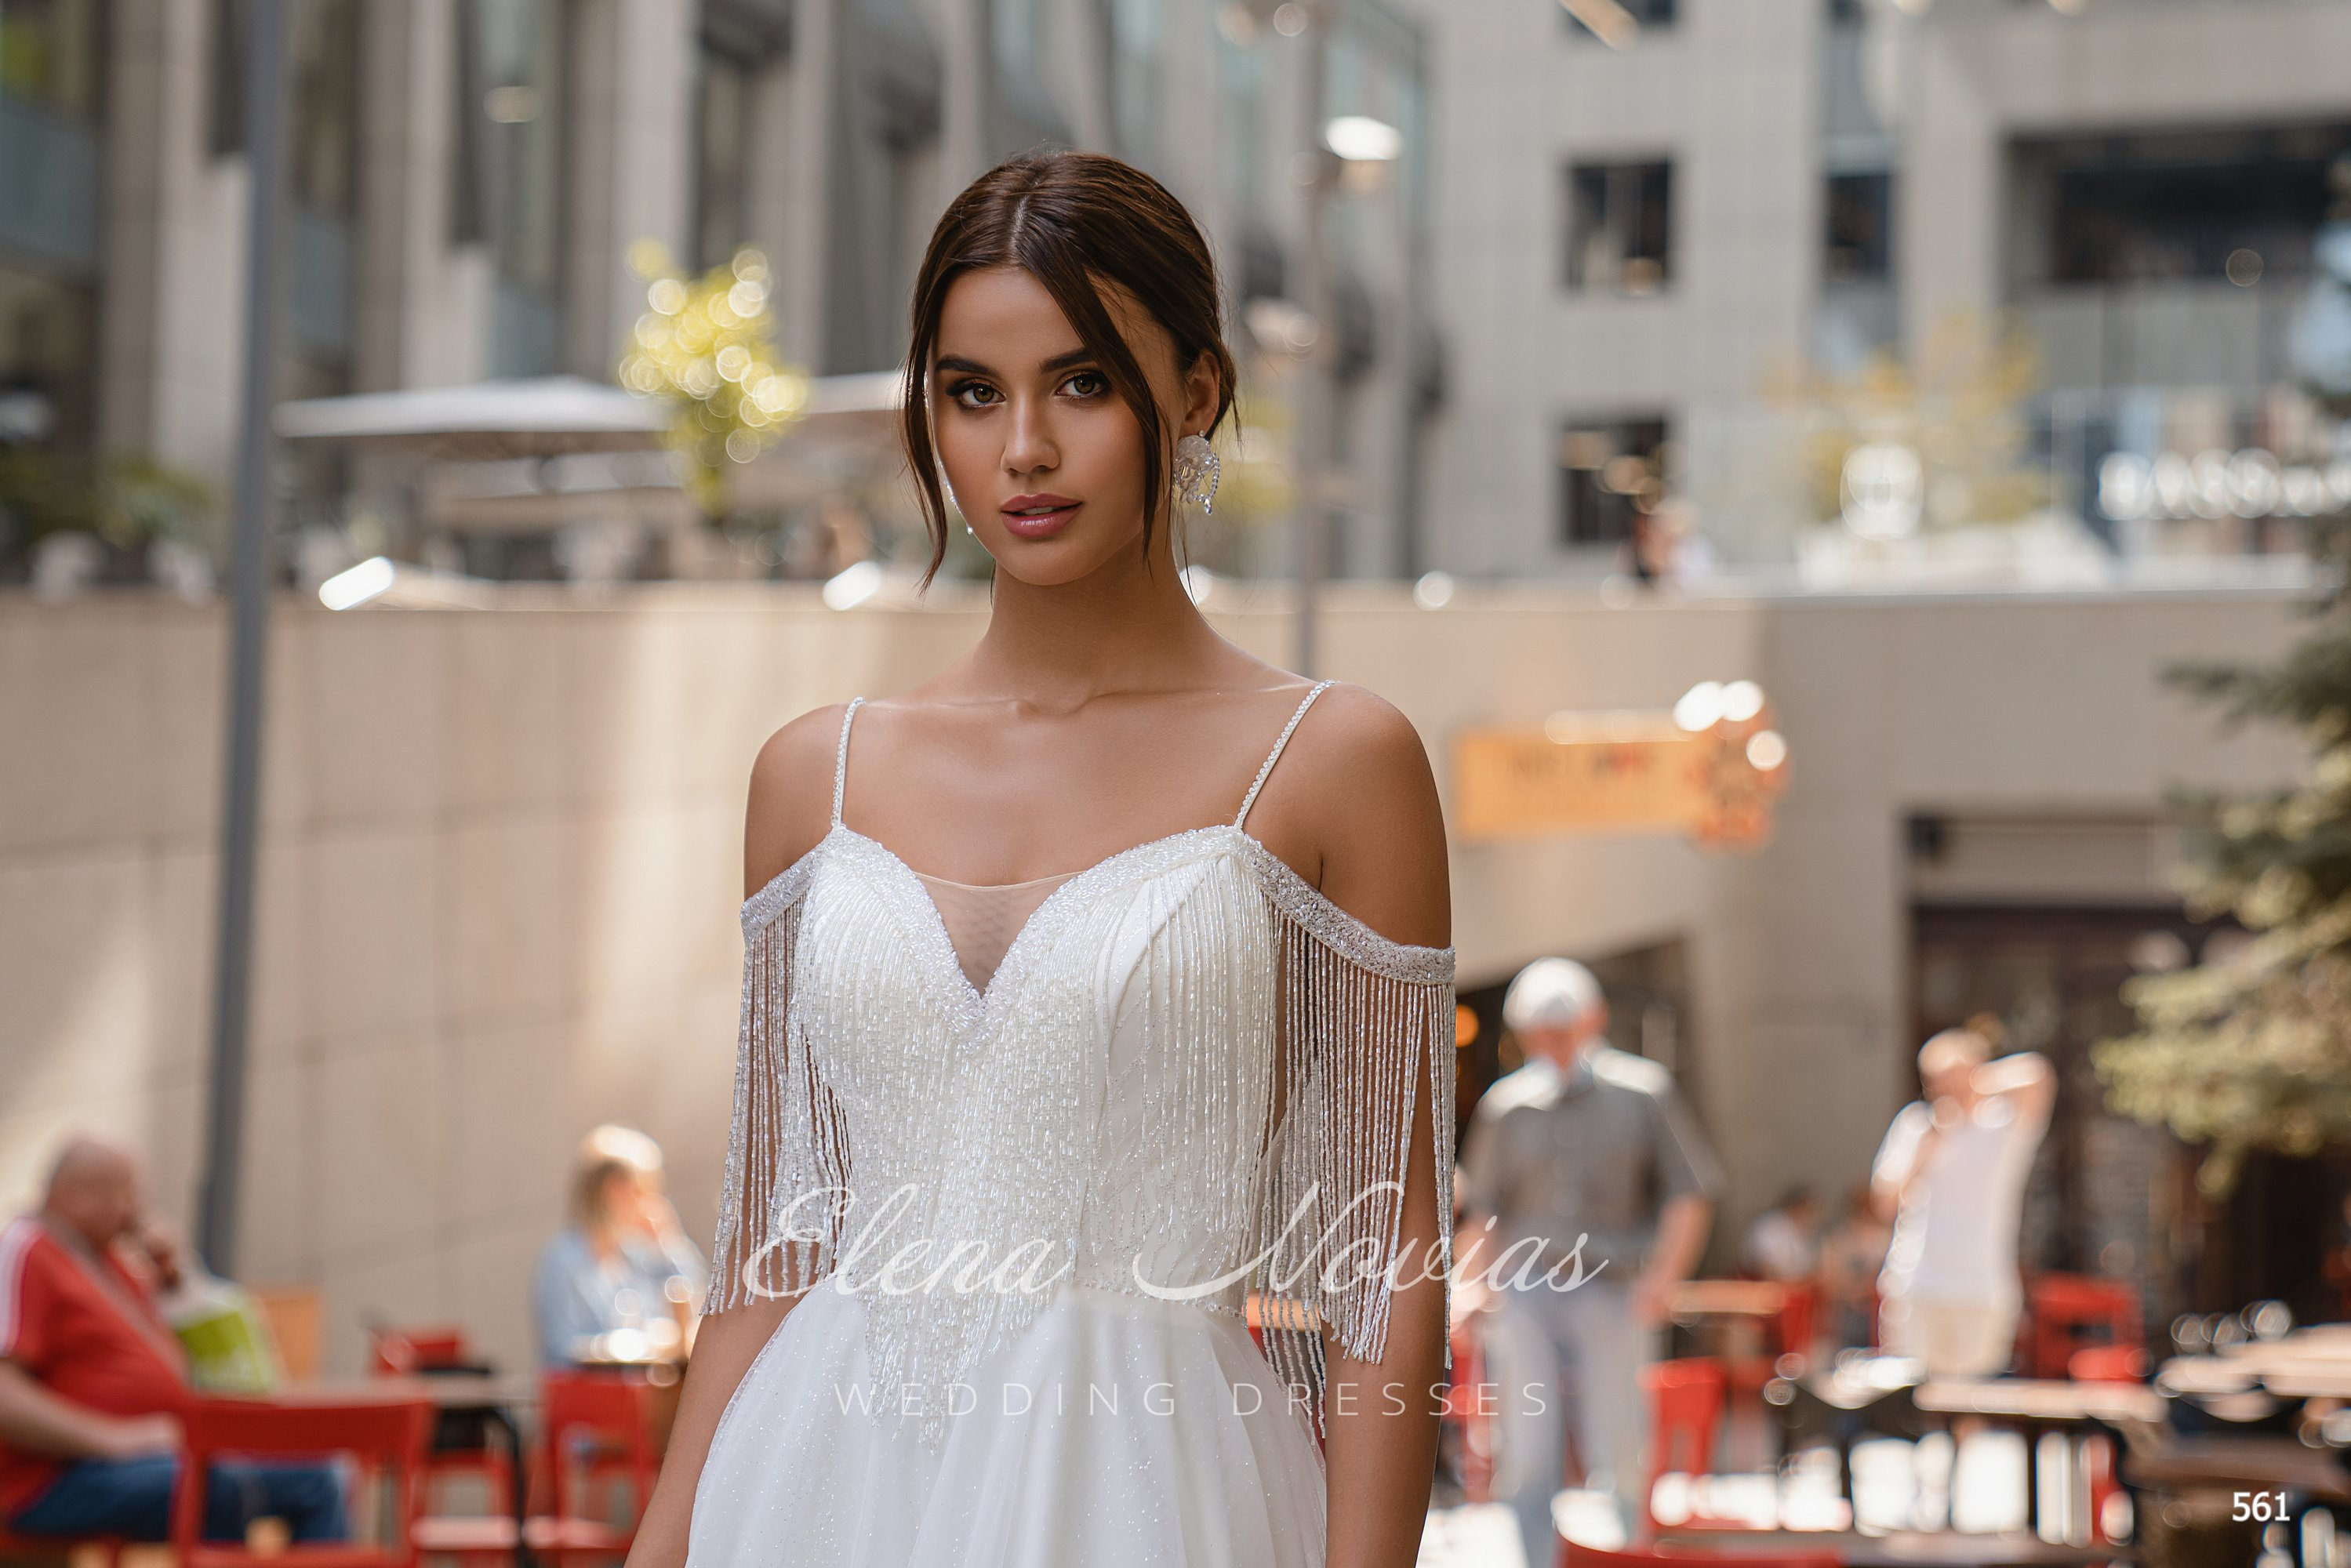 Wedding dresses 561 1